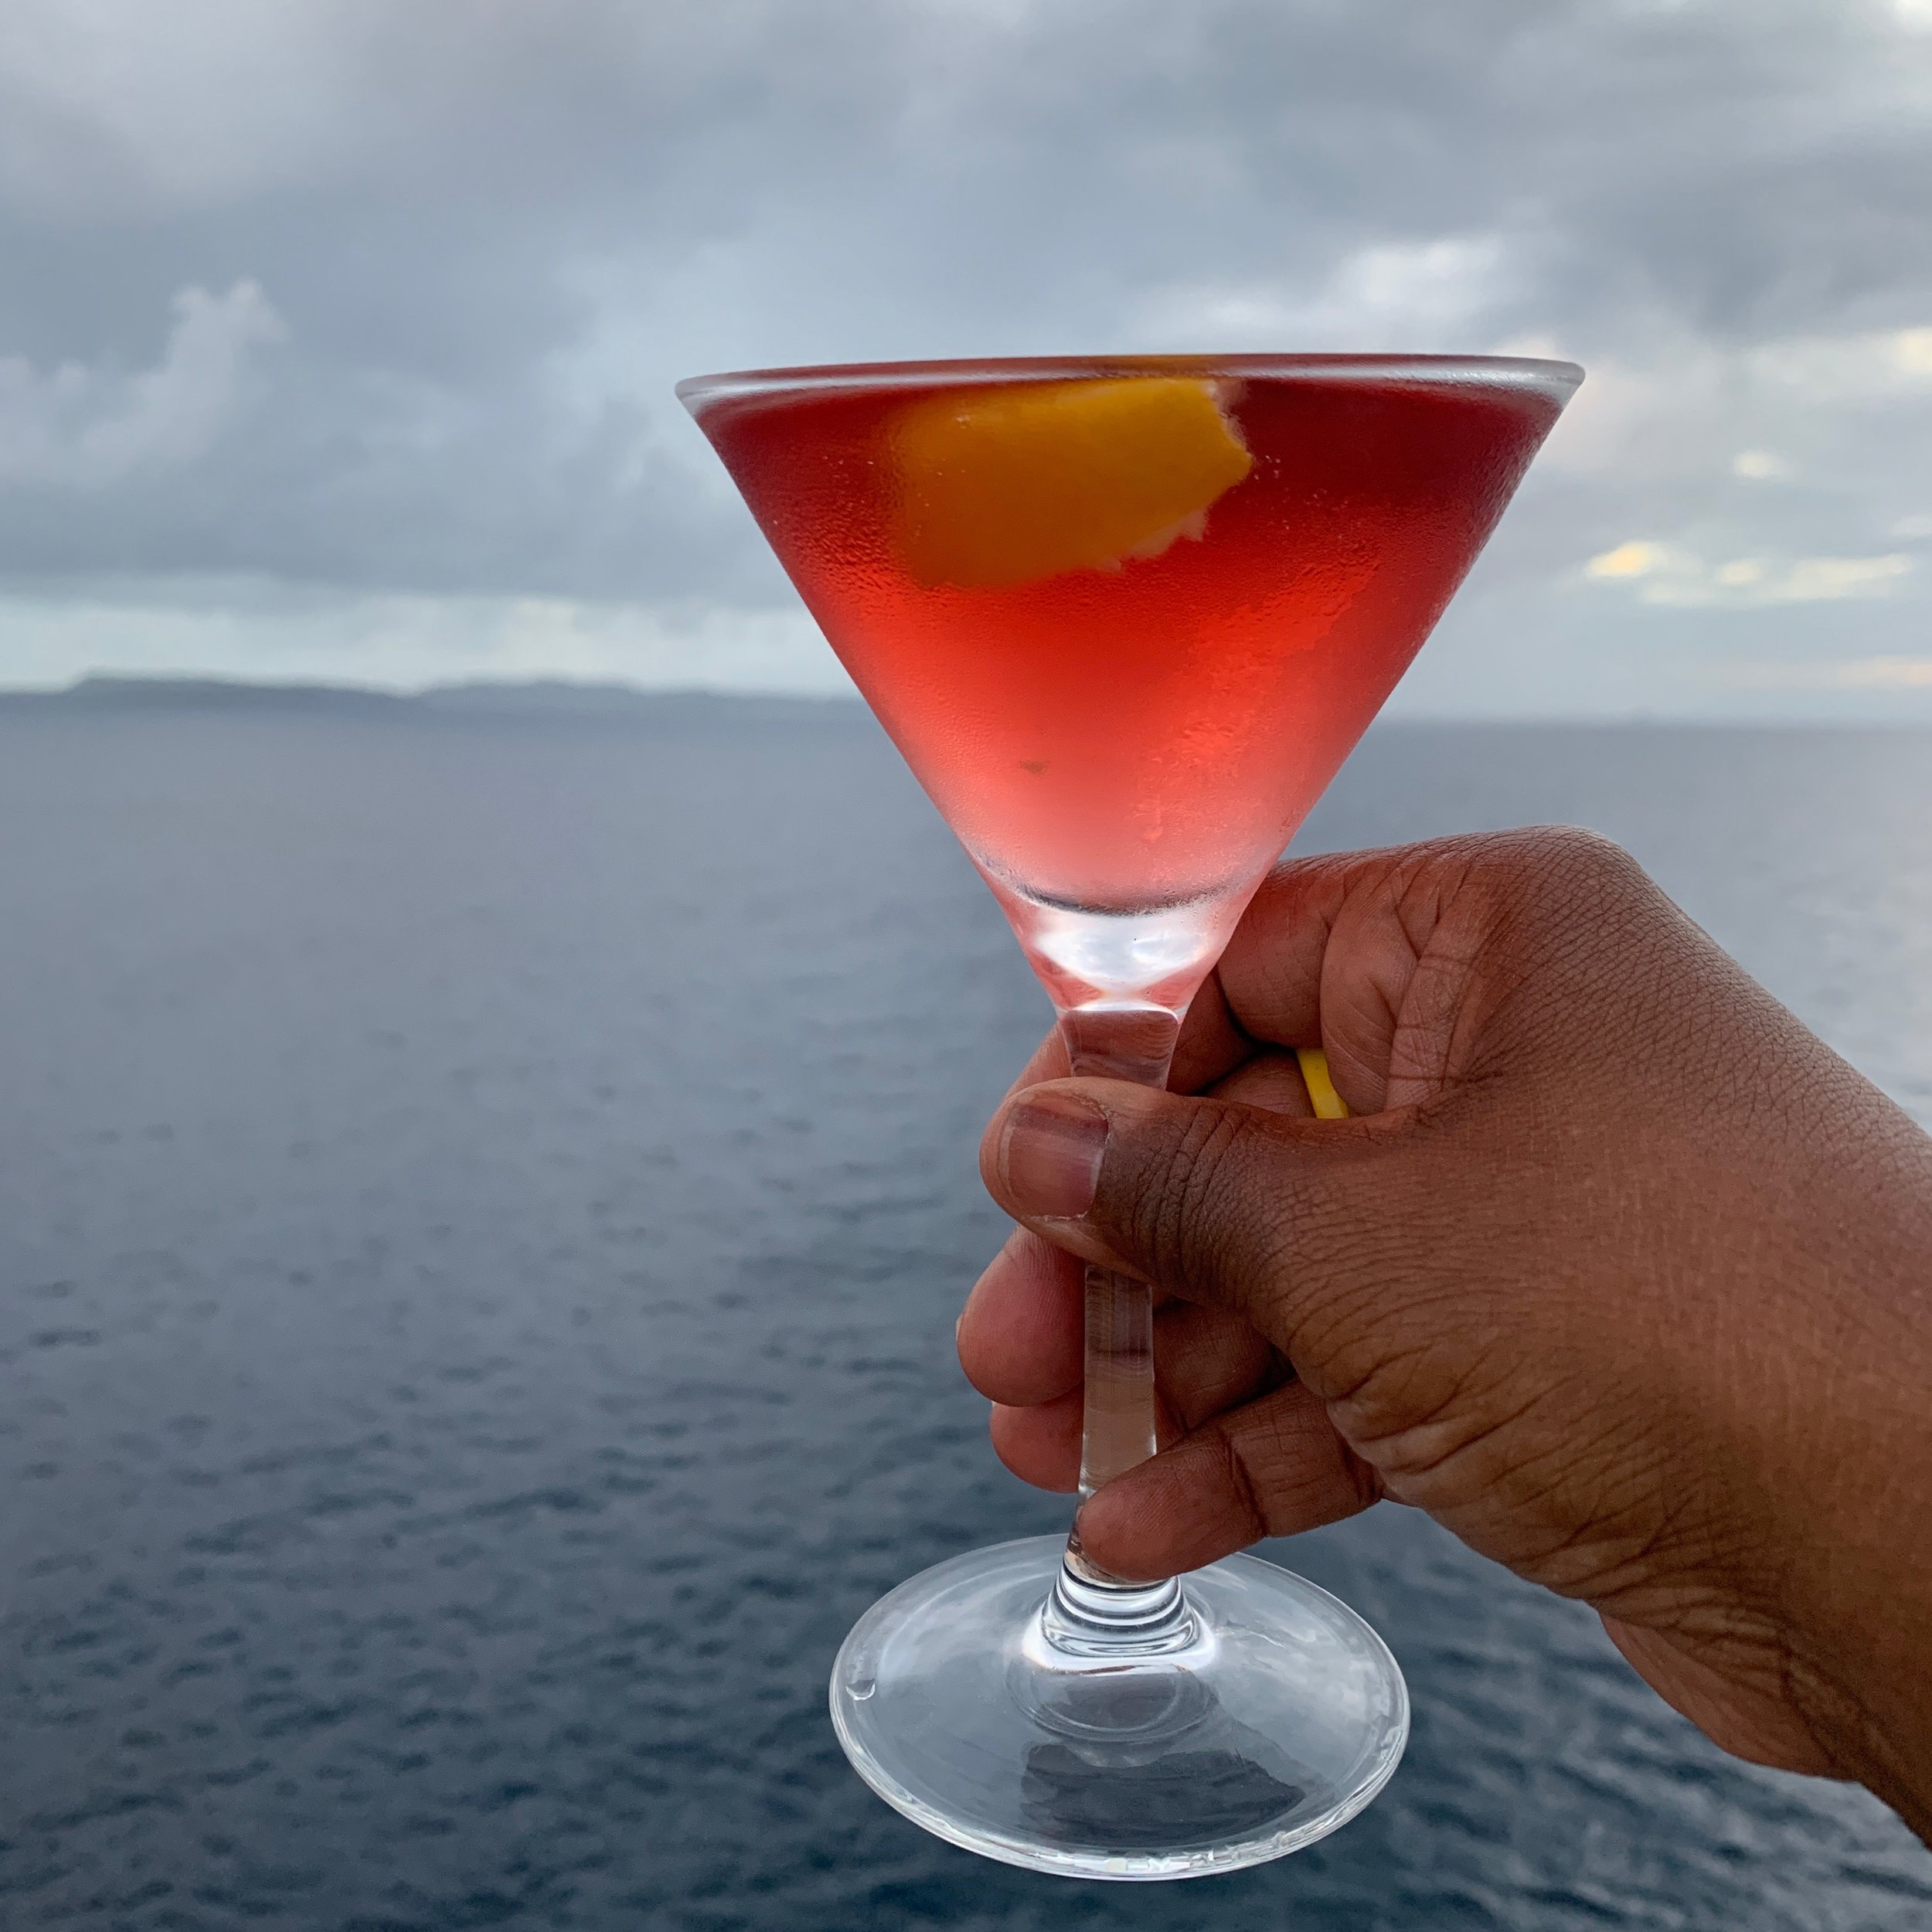 Because cocktails and cruising are a winning combination!